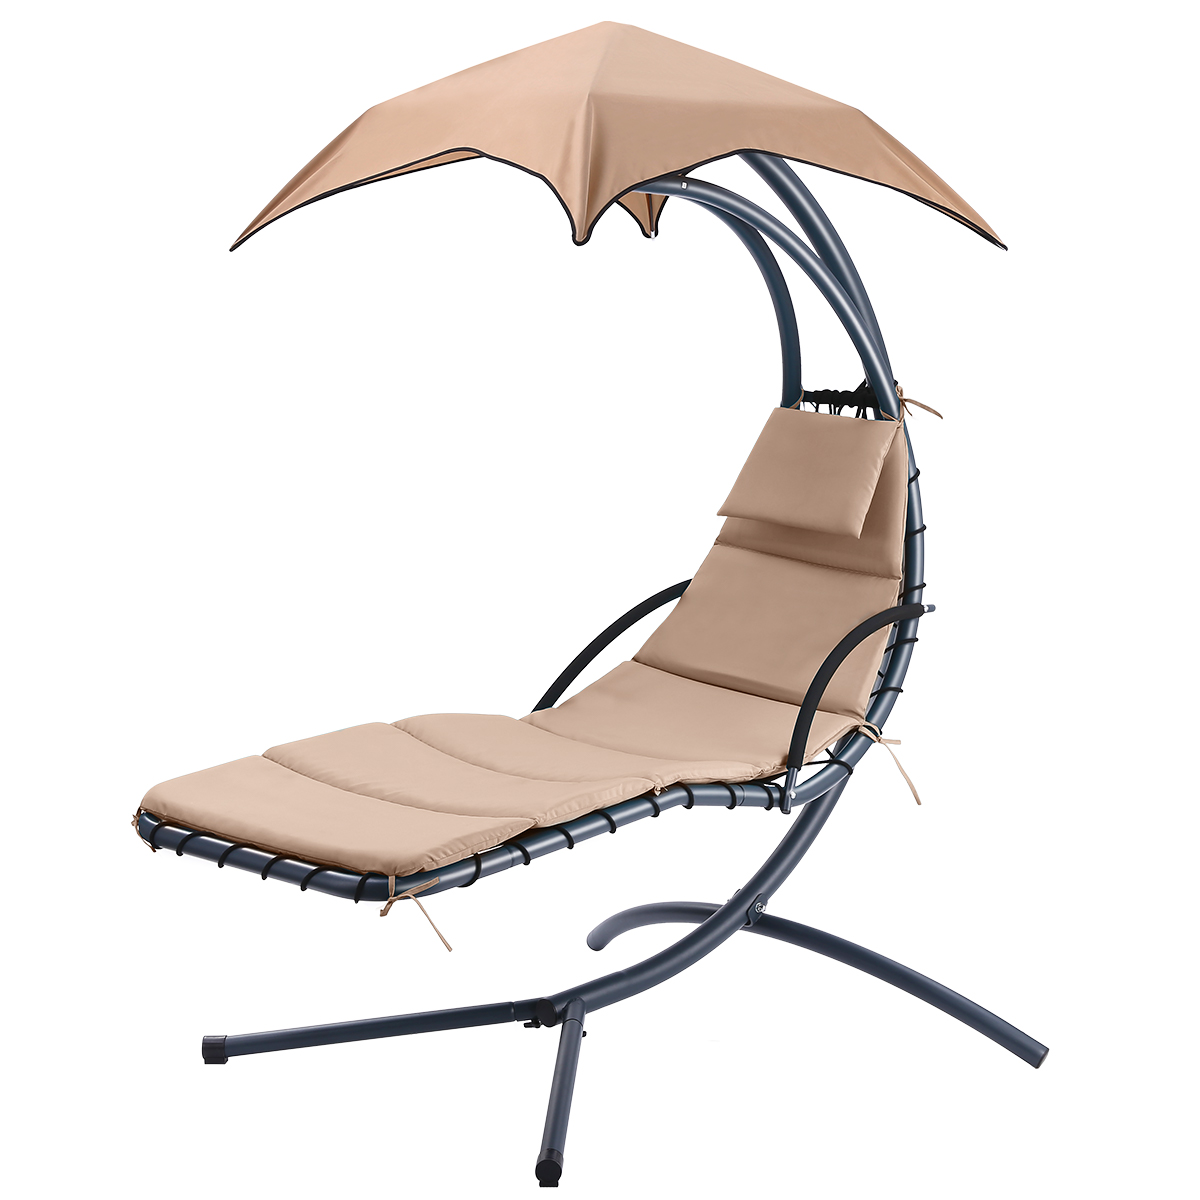 Hanging Rocking Sunshade Canopy Chair with Umbrella